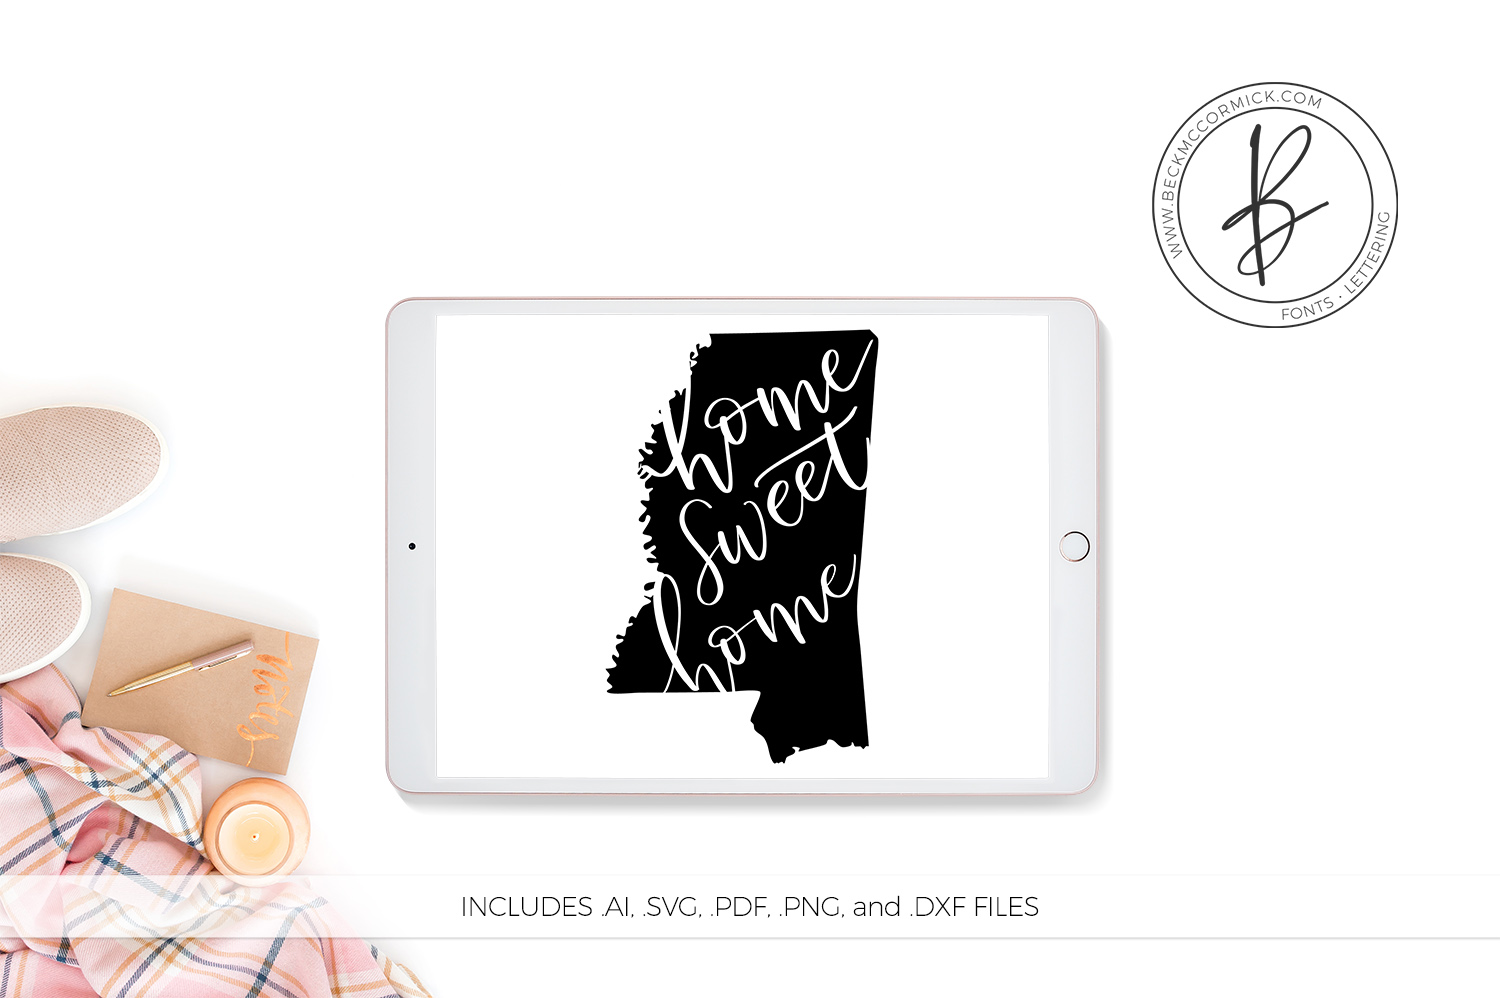 Download Free Mississippi Home Sweet Home Graphic By Beckmccormick Creative for Cricut Explore, Silhouette and other cutting machines.